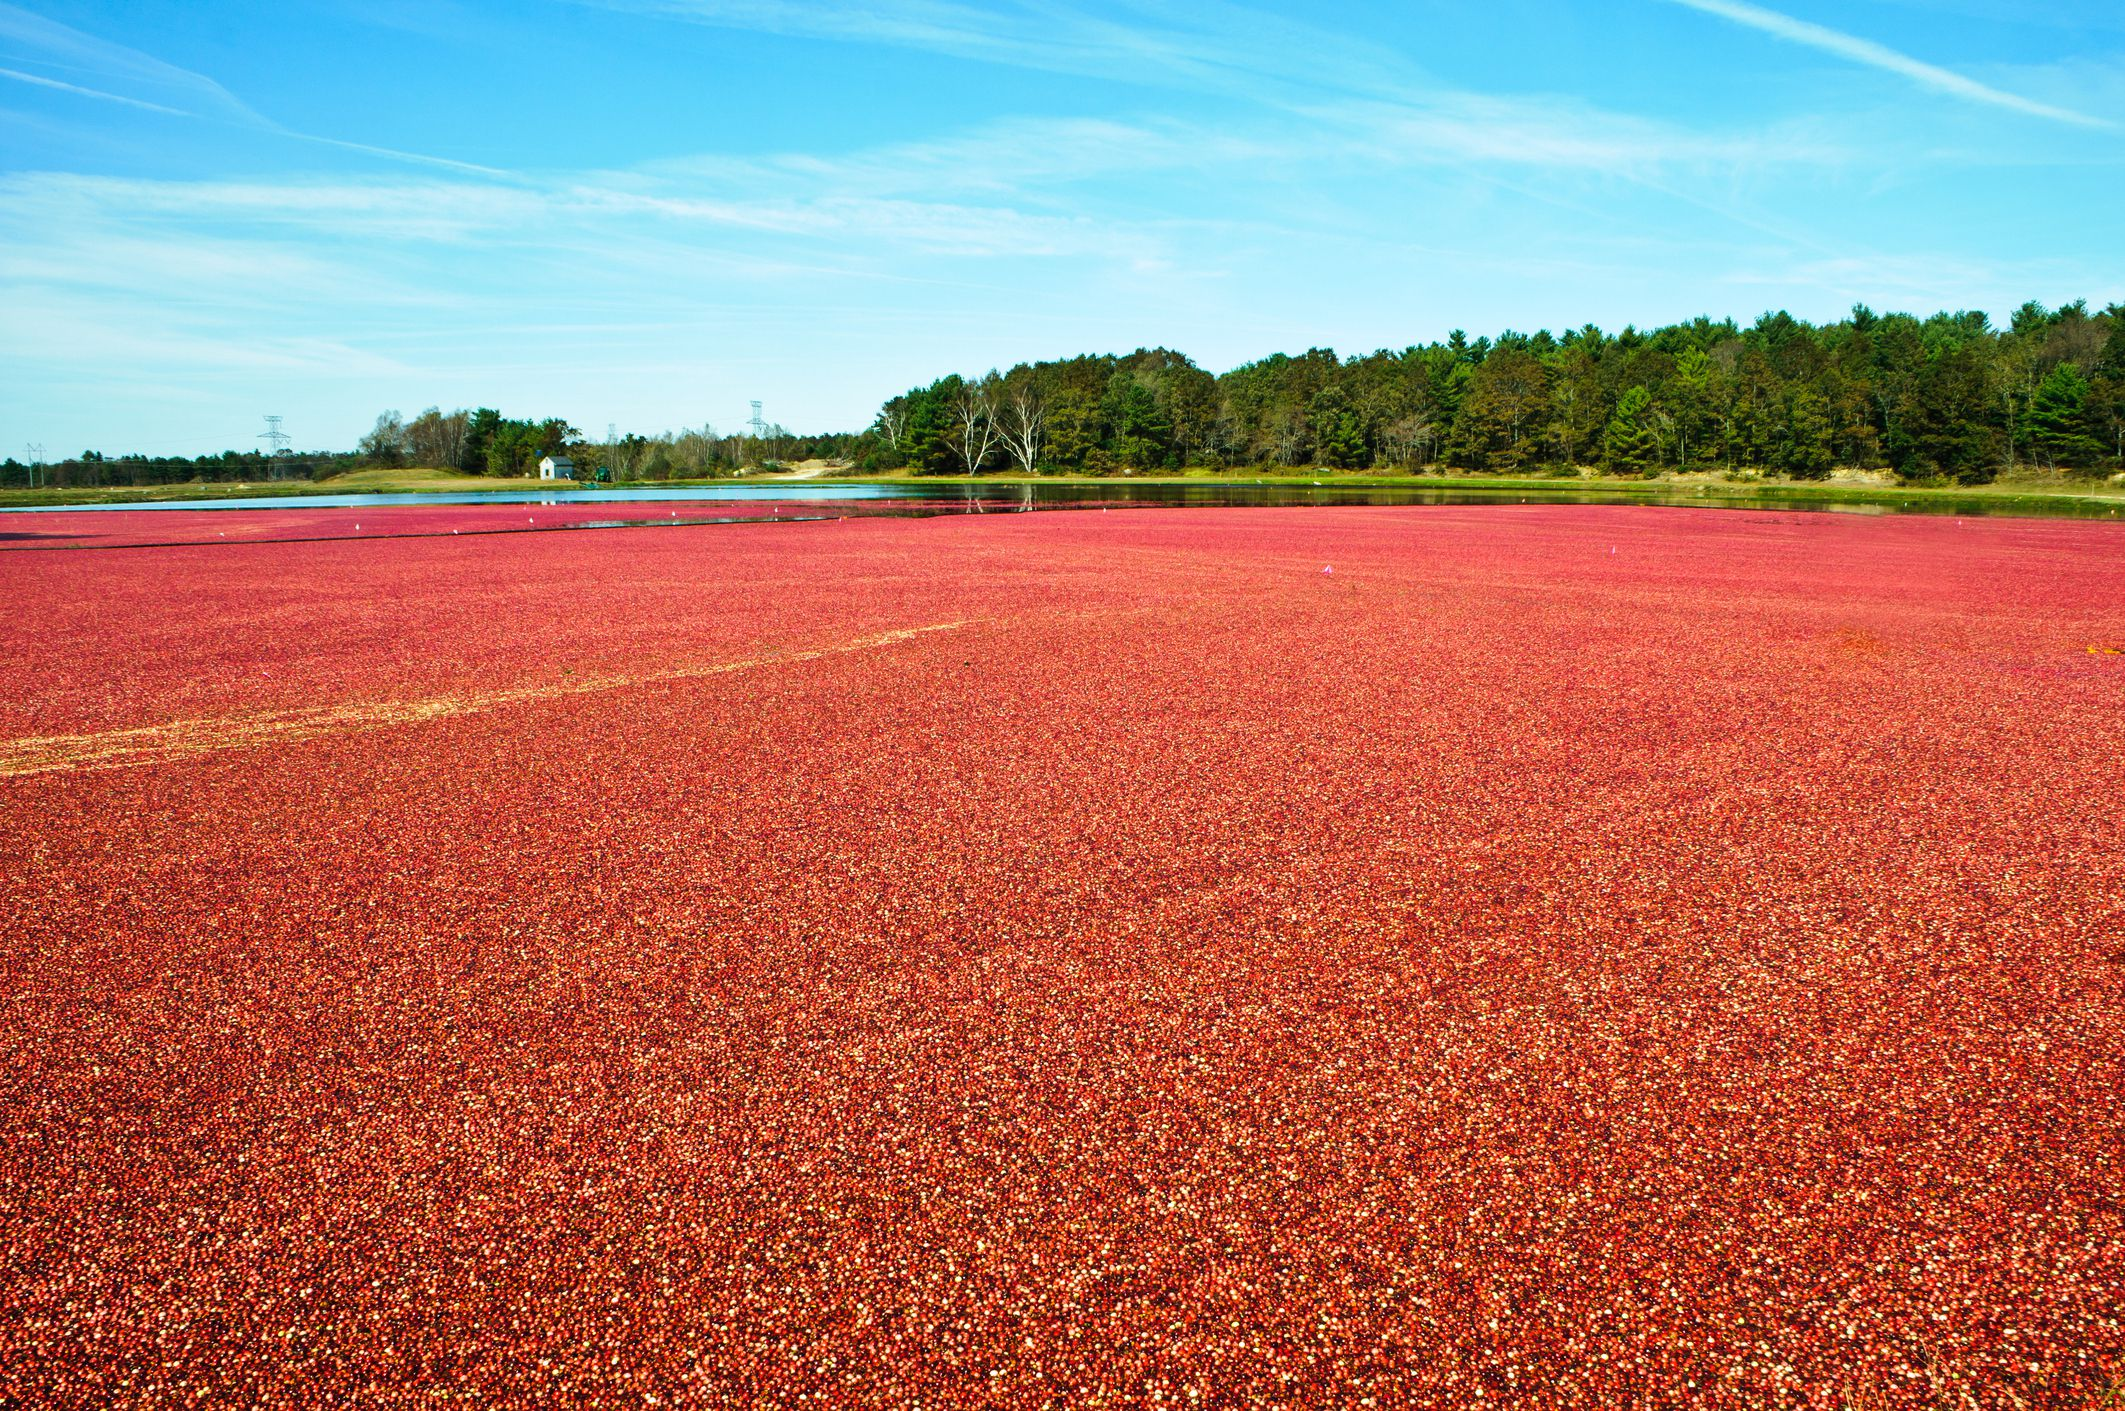 These Are The 6 Best Cranberry Bogs To Visit In Massachusetts